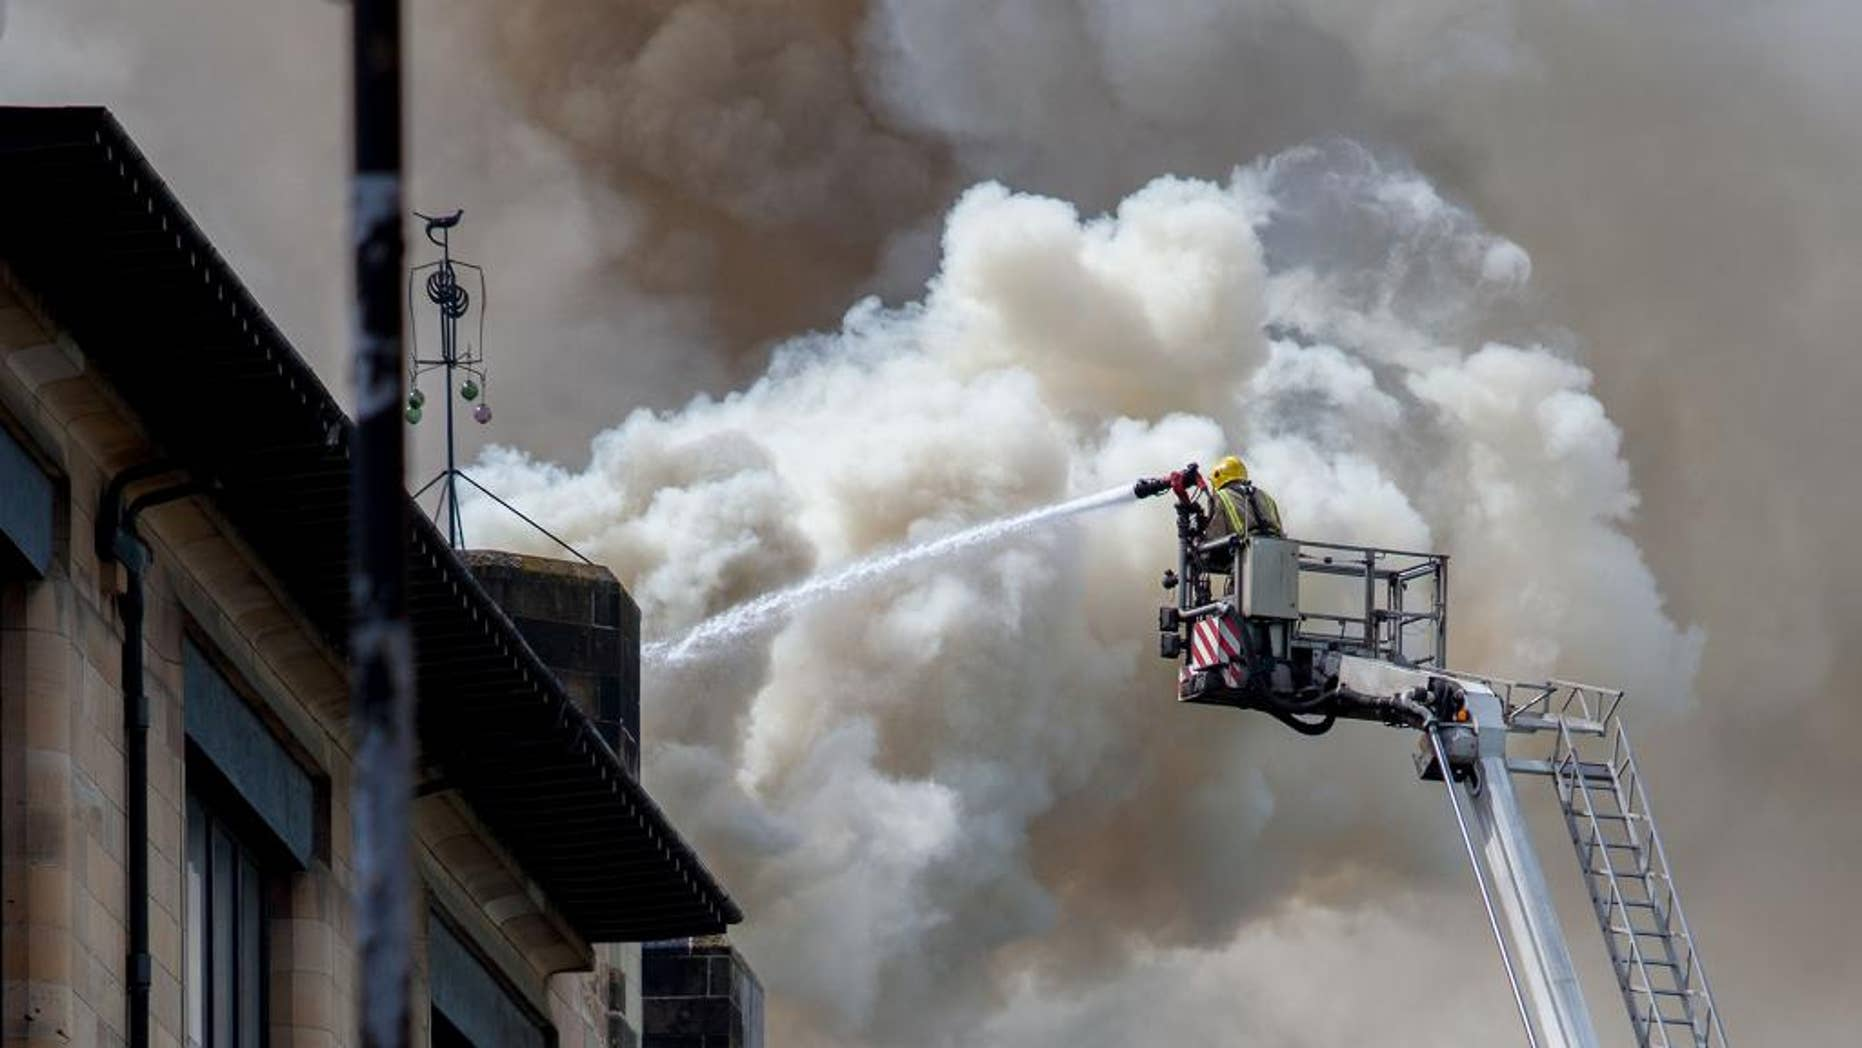 "In this photo released by David Barz , firefighters attend a fire at  Glasgow School of Art, Glasgow, Scotland, Friday, May 23, 2014.    A major fire has devastated the Glasgow School of Art, one of the city's major landmarks. The Scottish Fire and Rescue Service said the blaze, which broke out just after noon on Friday, was a ""very significant fire."" Flames flared through the roof and windows of the sandstone Art Nouveau building, designed by architect Charles Rennie Mackintosh and completed in 1909. A 2009 poll by the Royal Institute of British Architects voted it the best British building of the last 175 years. (AP Photo / David Barz)"